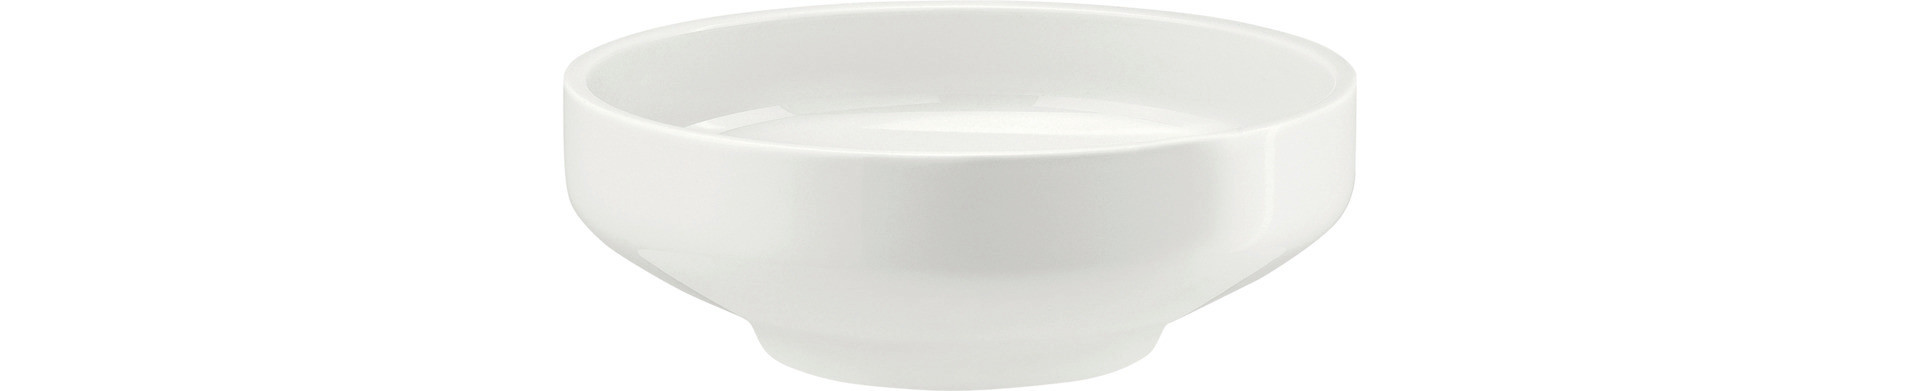 Shiro, Bowl ø 149 mm / 0,50 l